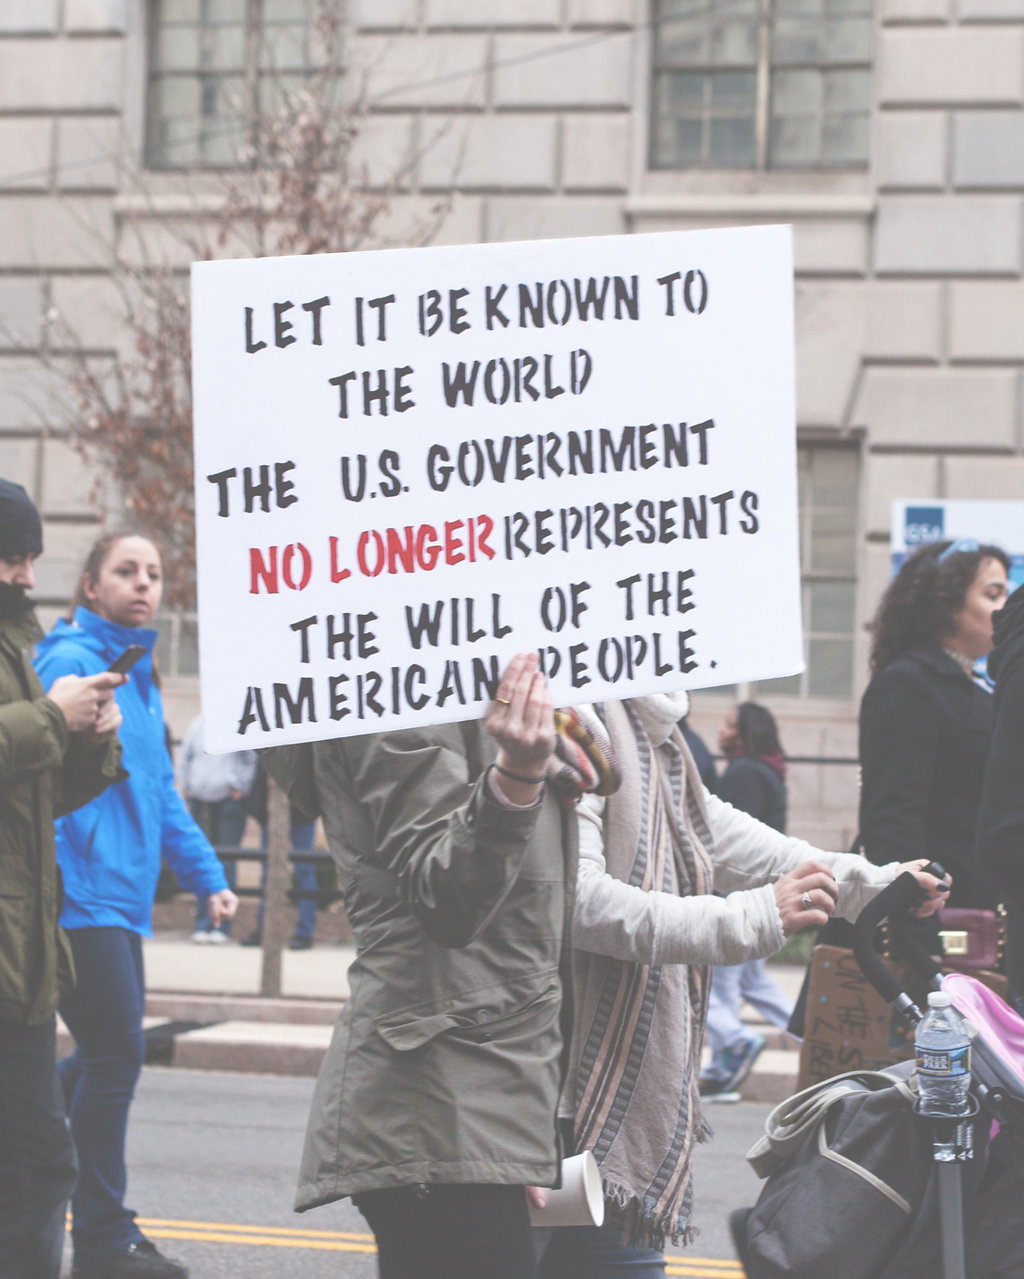 Women's March on Washington DC - Let it be known to the world the US Government no longer represents the will of the American people.